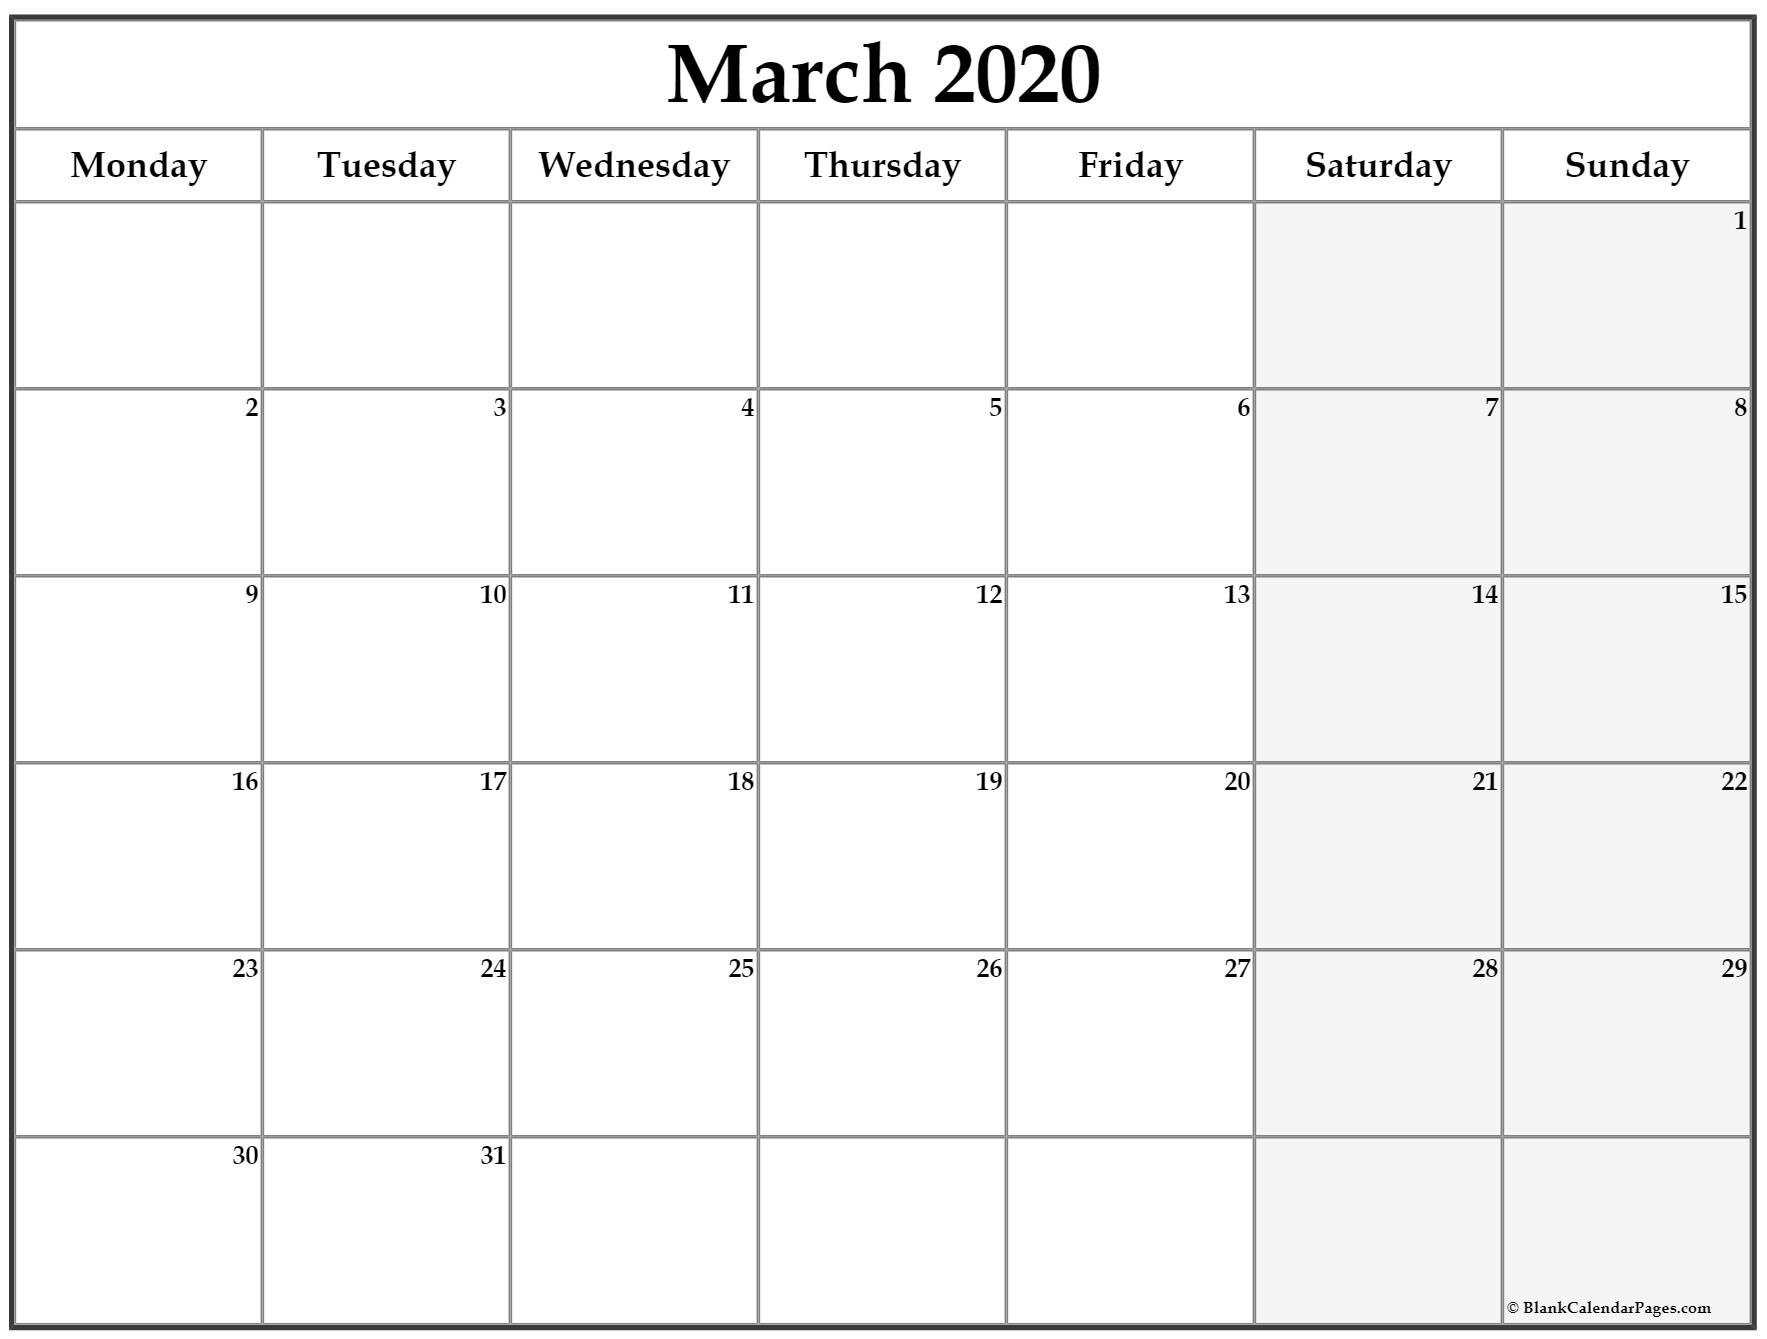 March 2020 Monday Calendar | Monday To Sunday